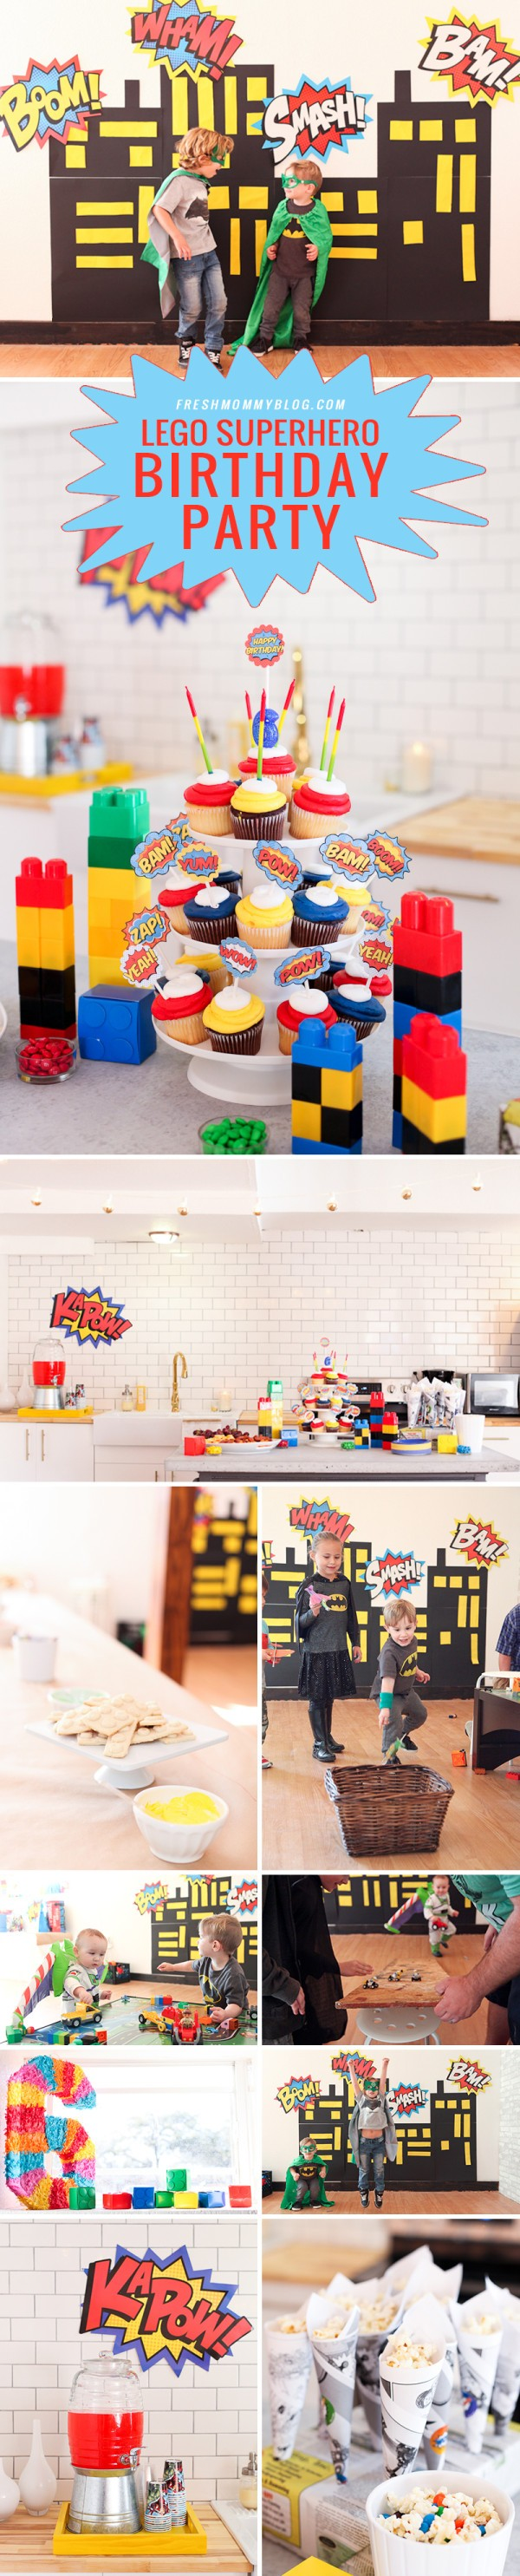 A bright and colorful Lego Superhero Birthday Party, with video games too!